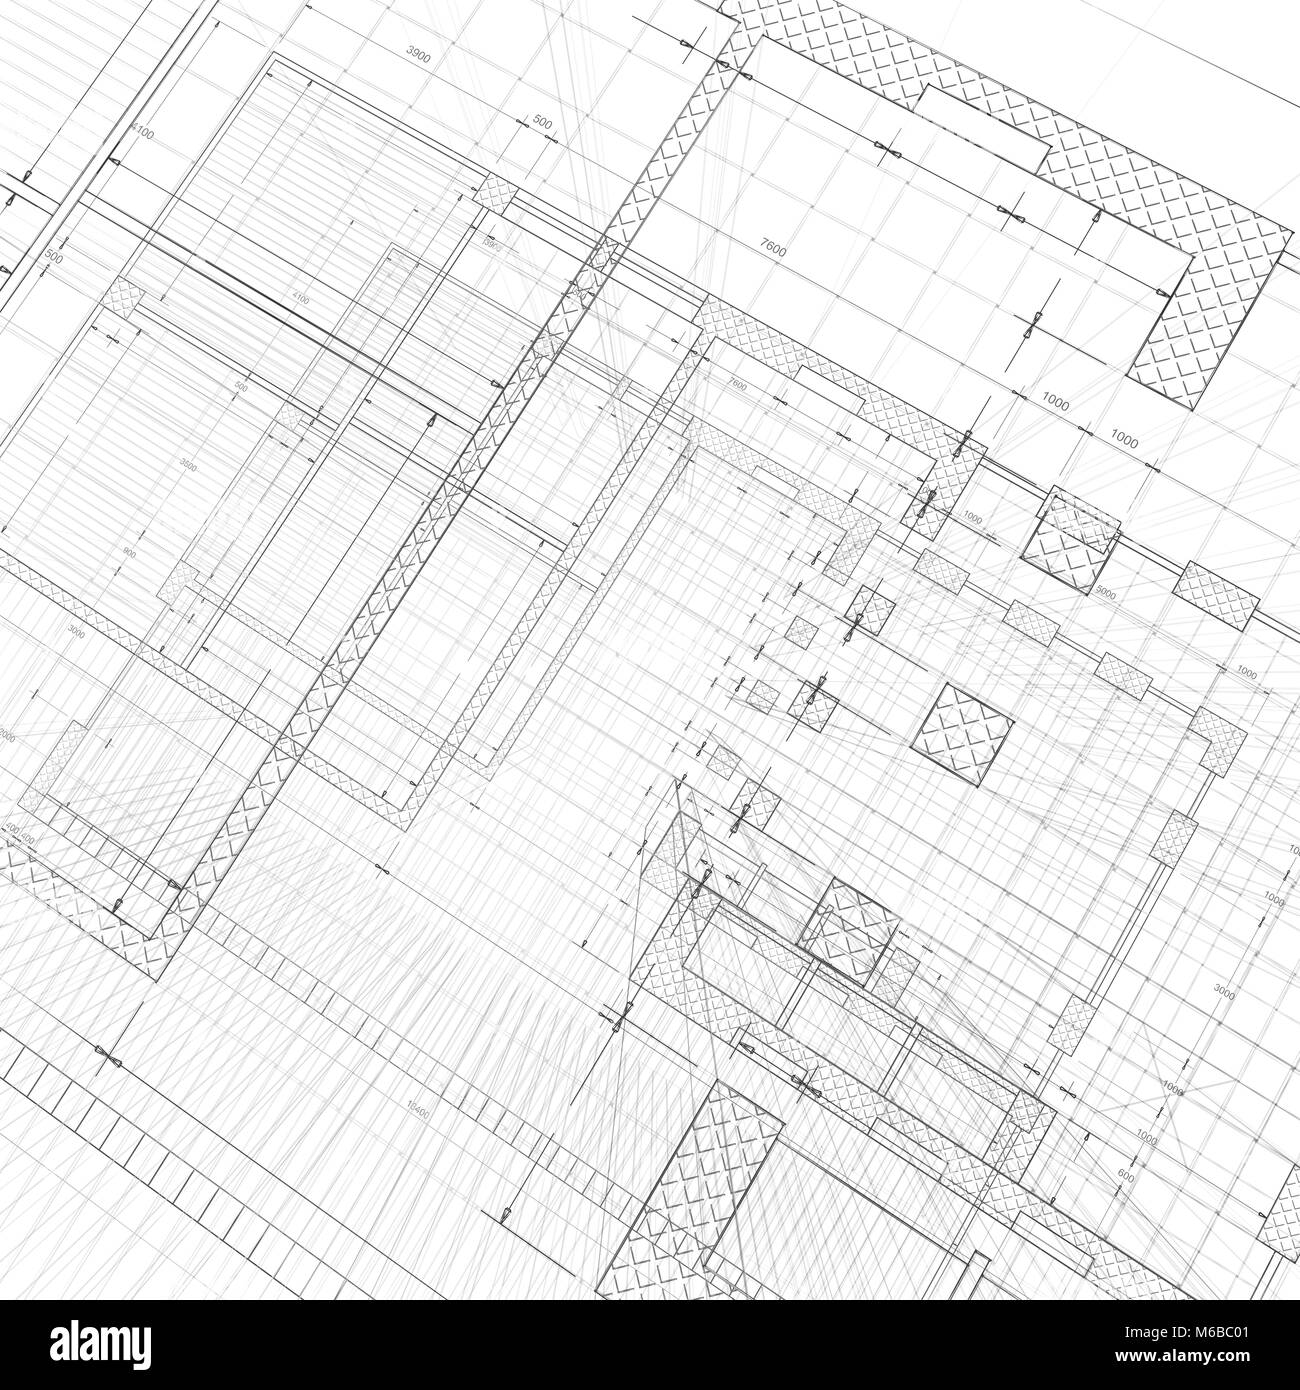 Building plan black and white stock photos images alamy architecture blueprint 3d rendering stock image malvernweather Image collections